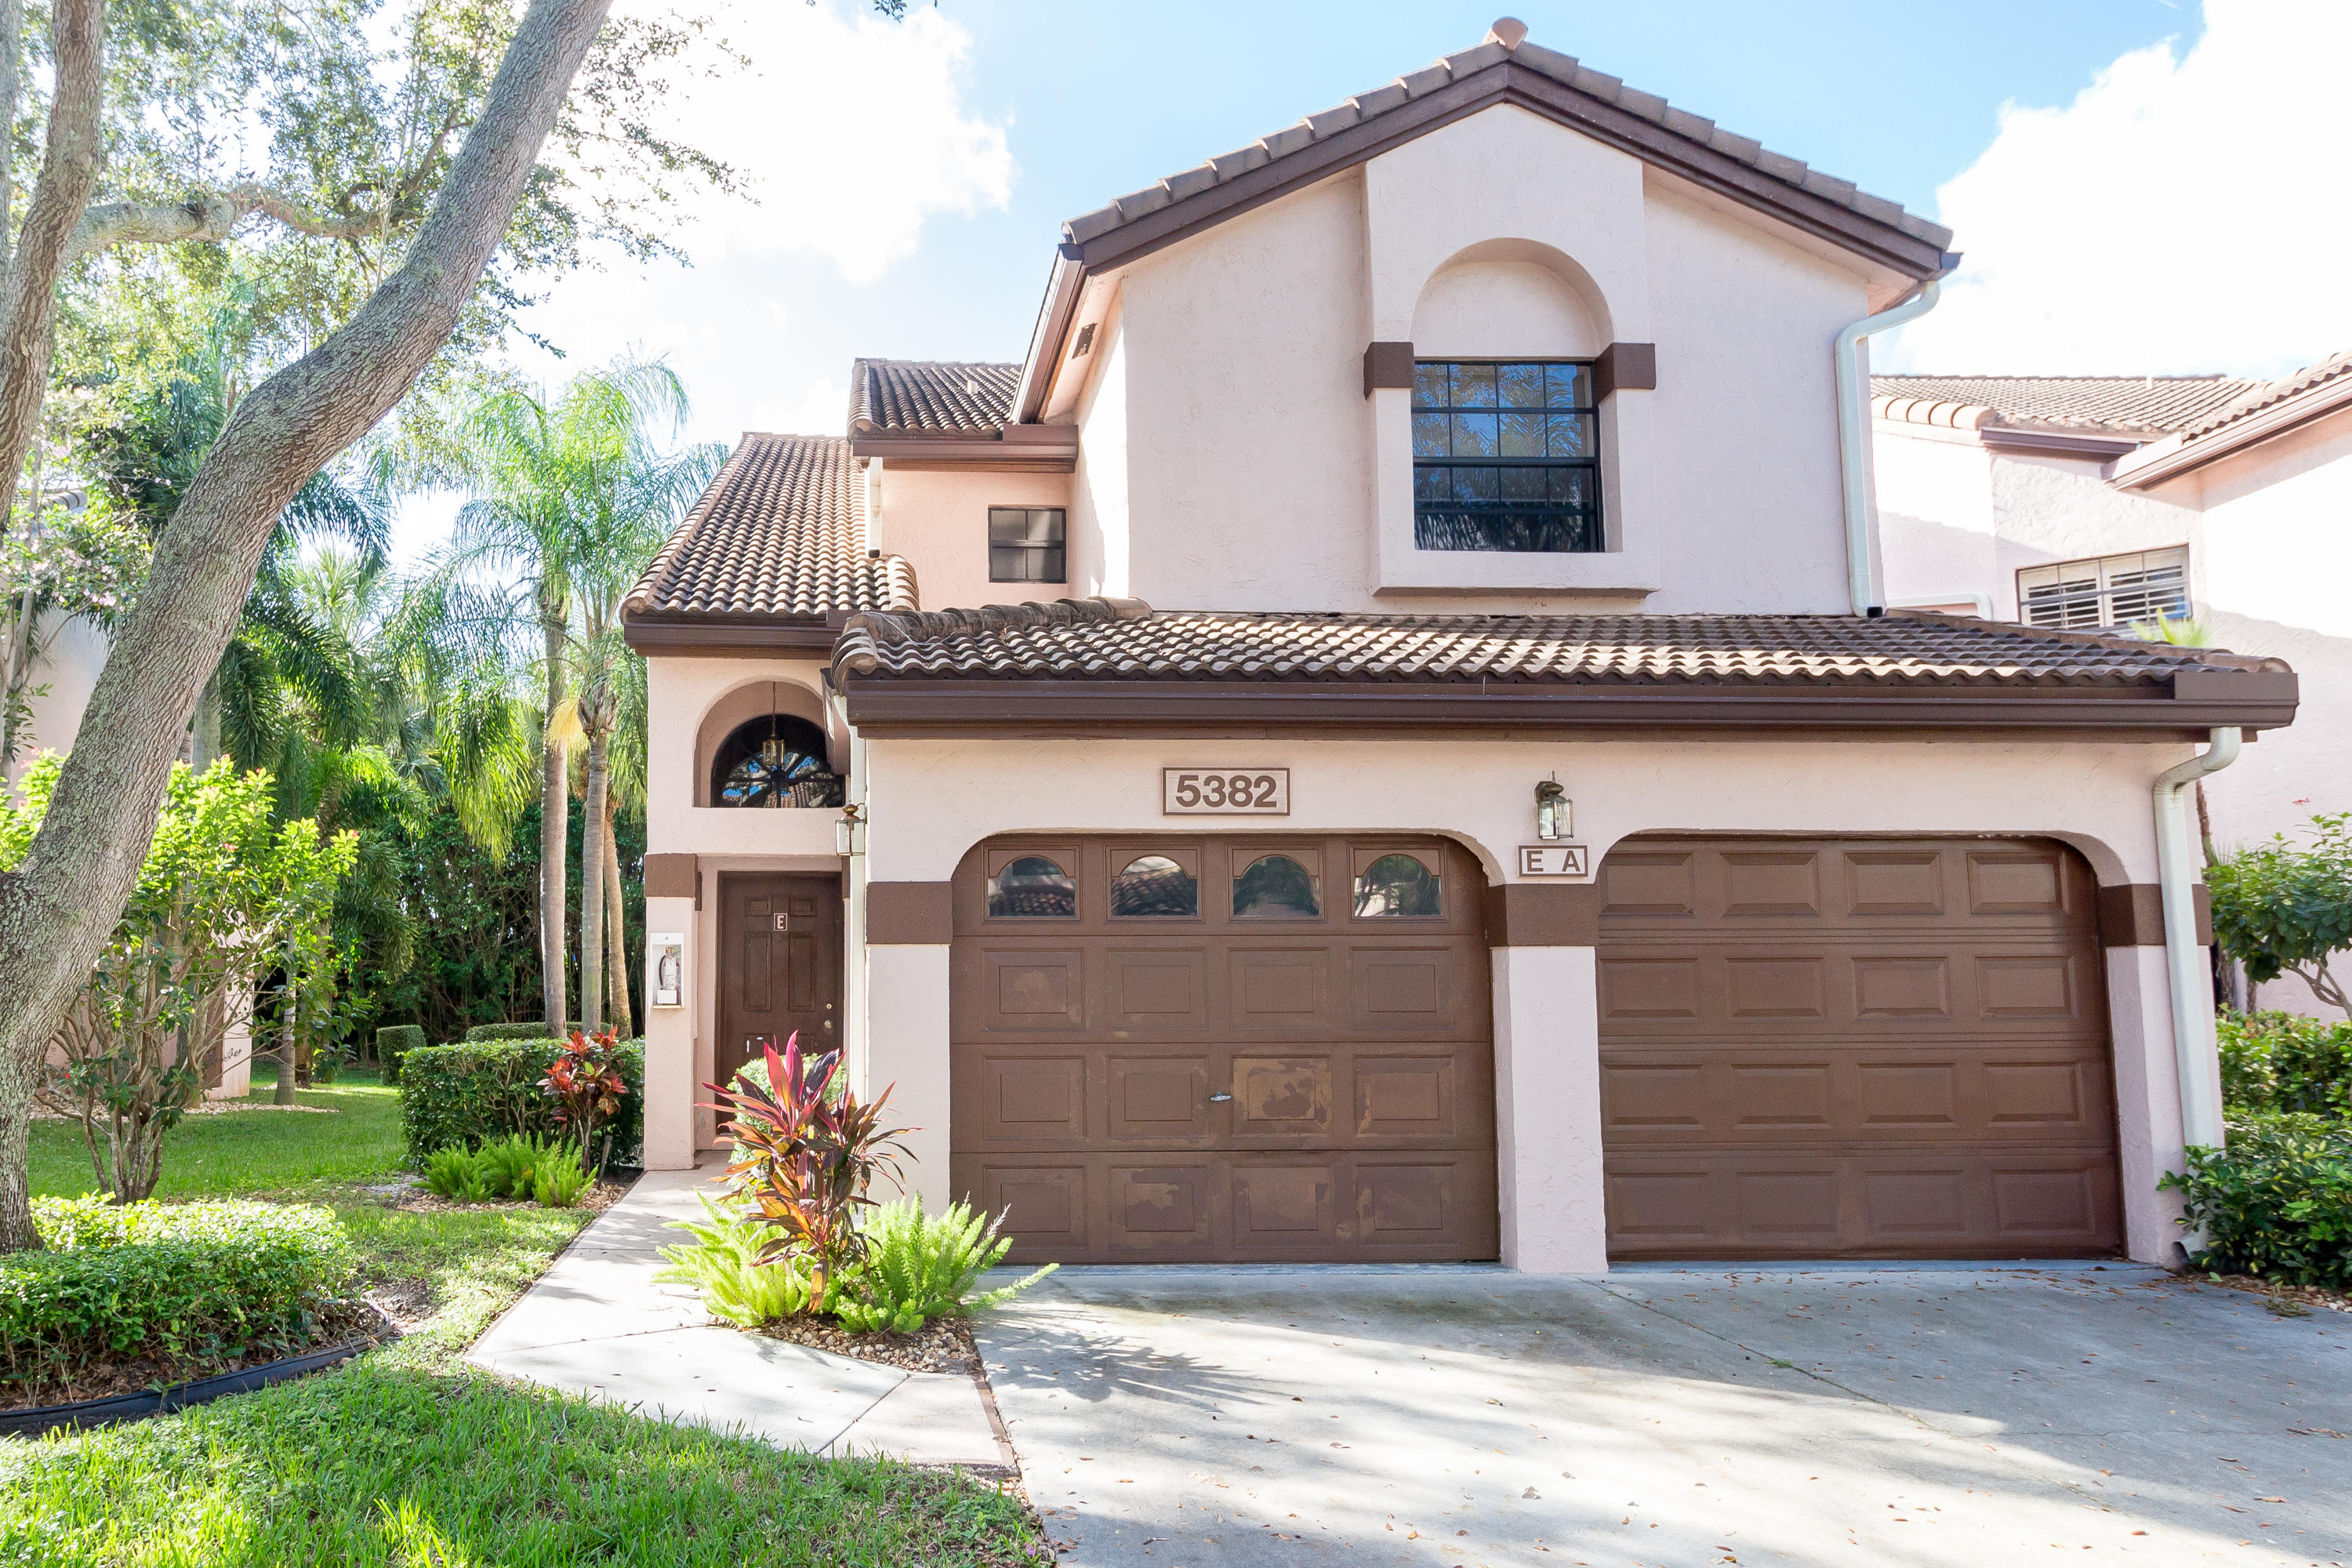 5382 Venetia Court, Boynton Beach, Florida 33437, 3 Bedrooms Bedrooms, ,2 BathroomsBathrooms,Townhouse,For Sale,Alexandra Village,Venetia,2,RX-10487323